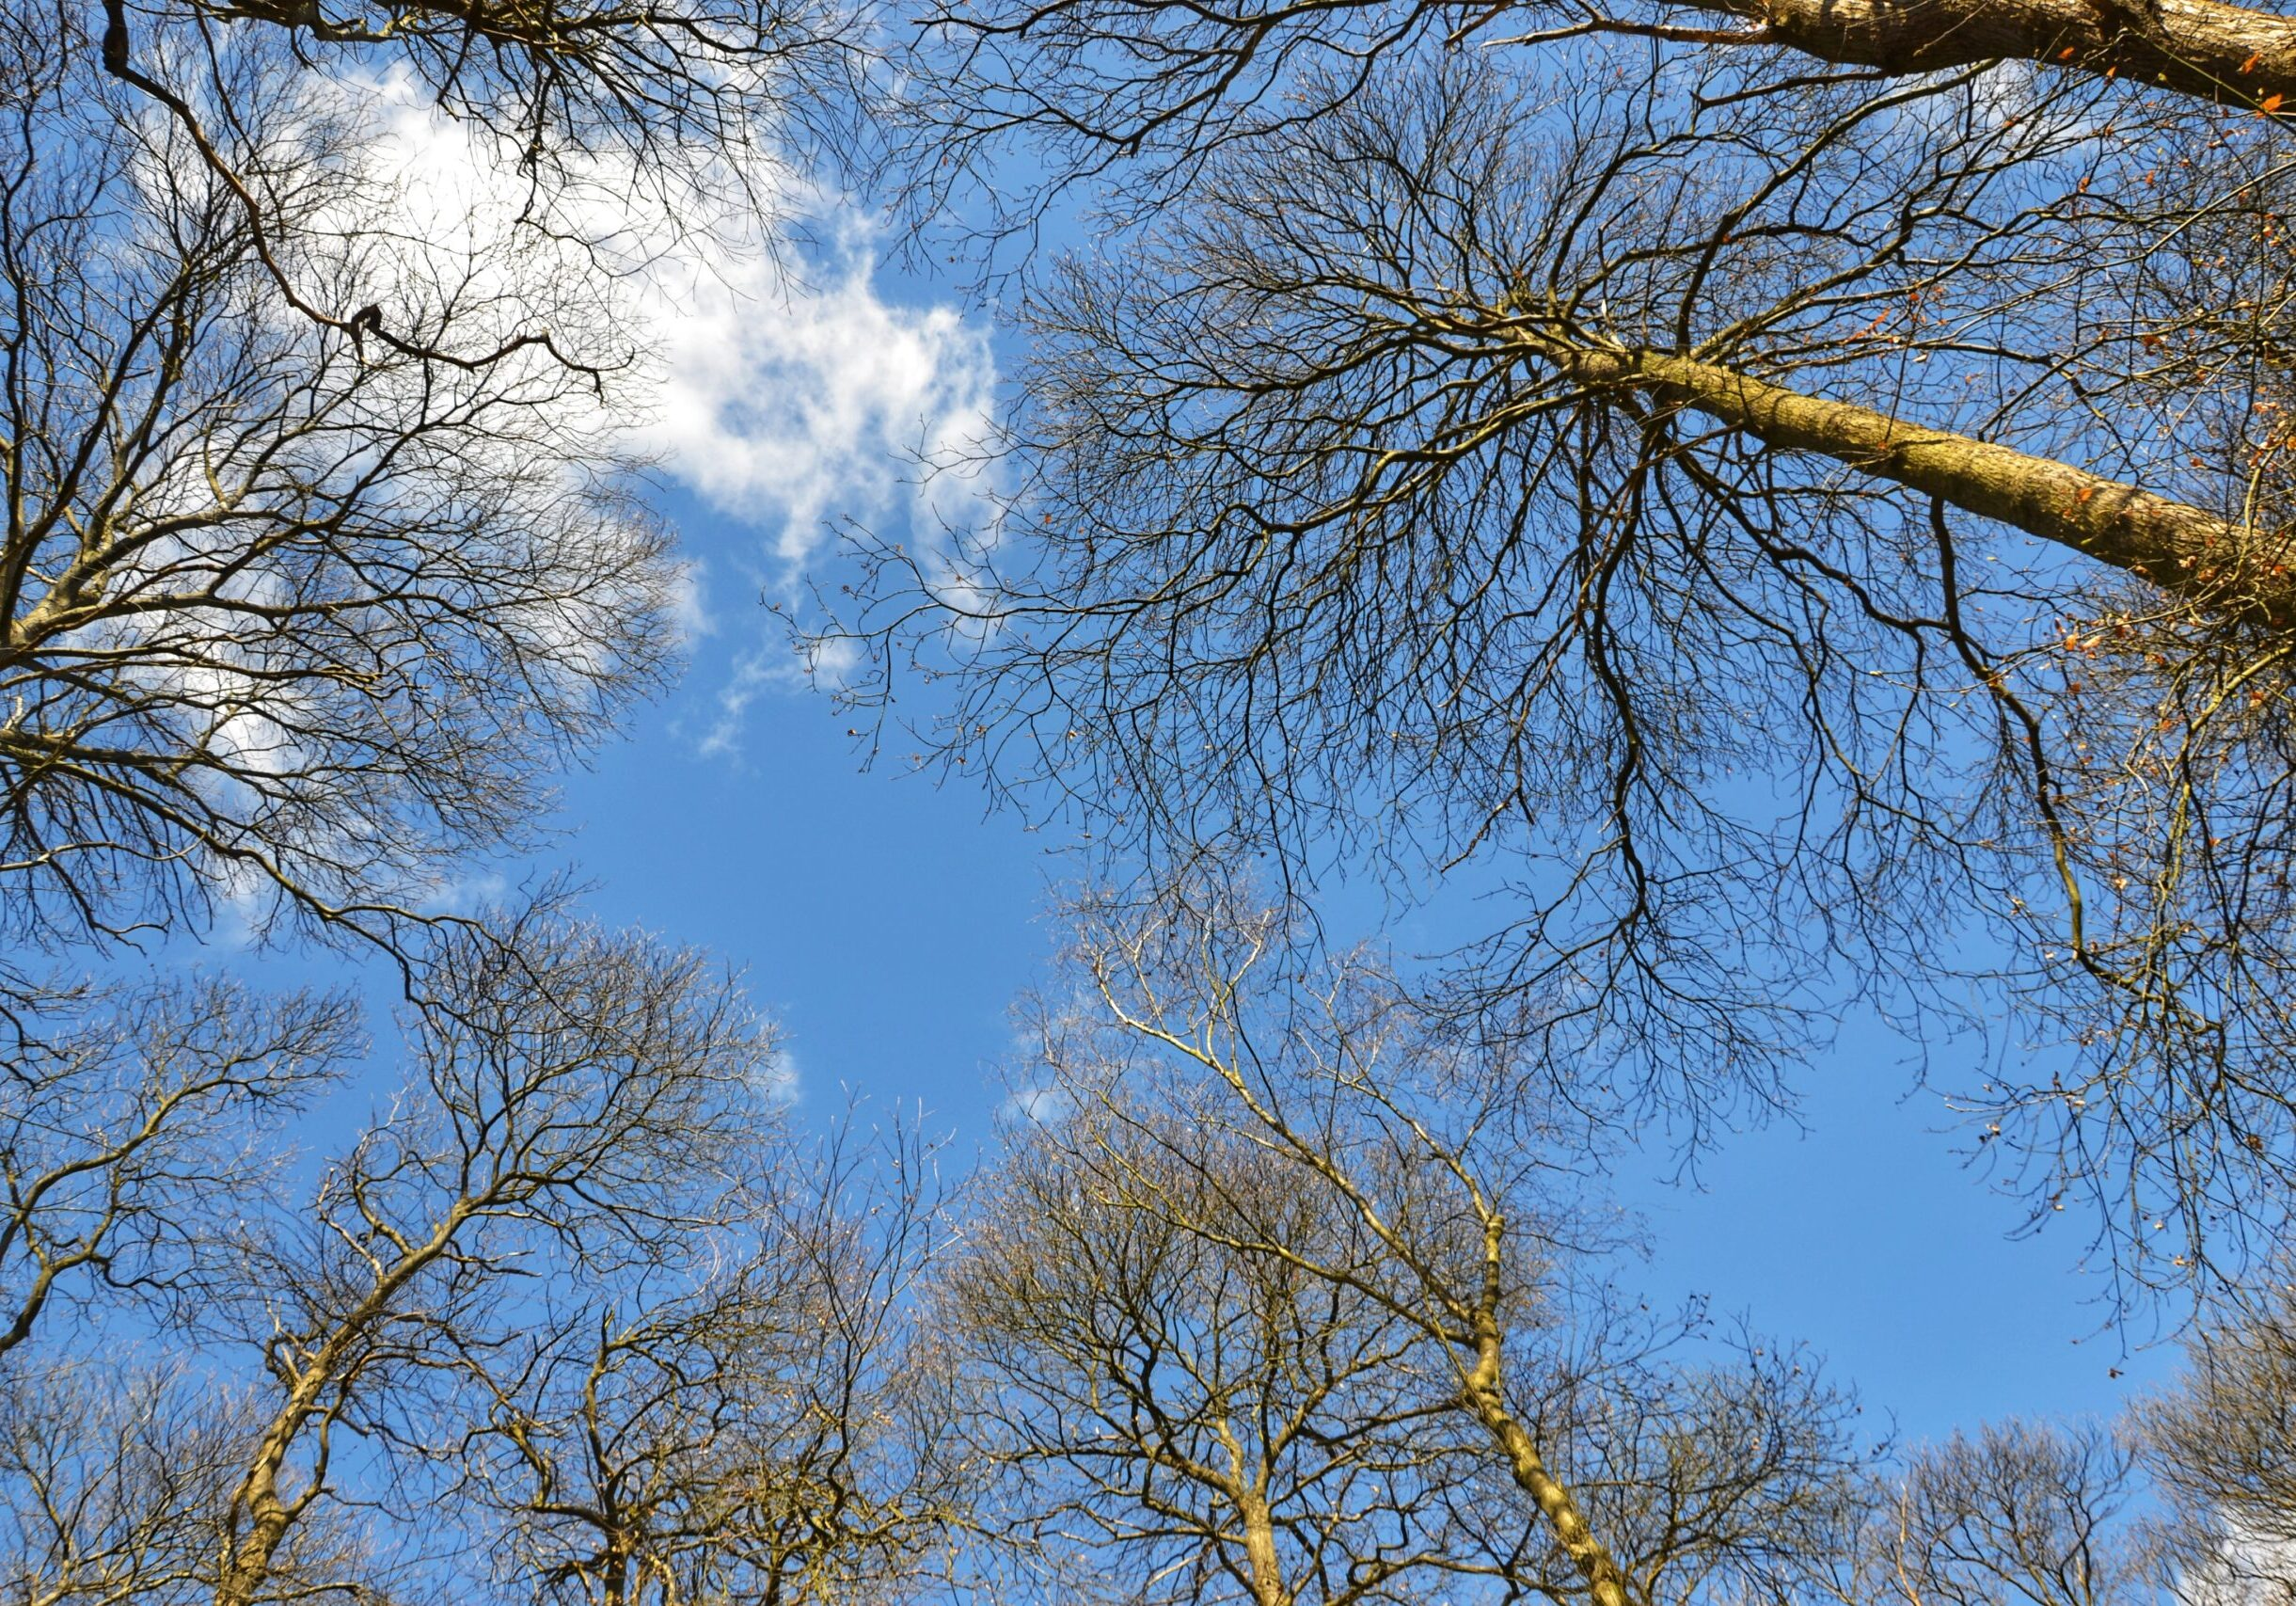 Looking up through the trees to a beautiful blue sky